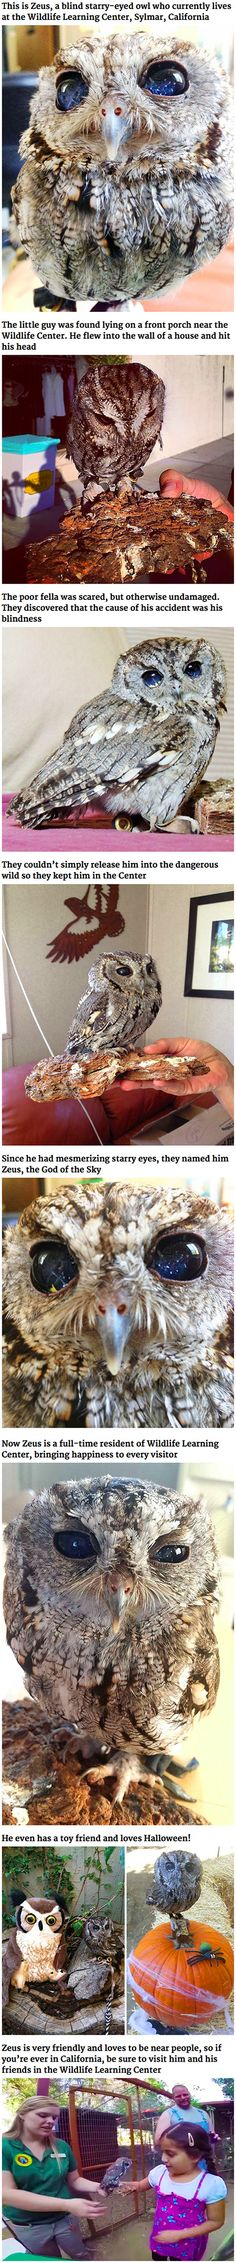 "One morning, someone in Southern California found an injured owl on their porch. It turned out to be a blind Western Screech Owl with eyes that look like a starry night. After a visit to the vet, the owl found a new permanent home at the Wildlife Learning Center in Sylmar, California. He was named ""Zeus"" after the Greek god of sky and thunder because of his stunning eyes."